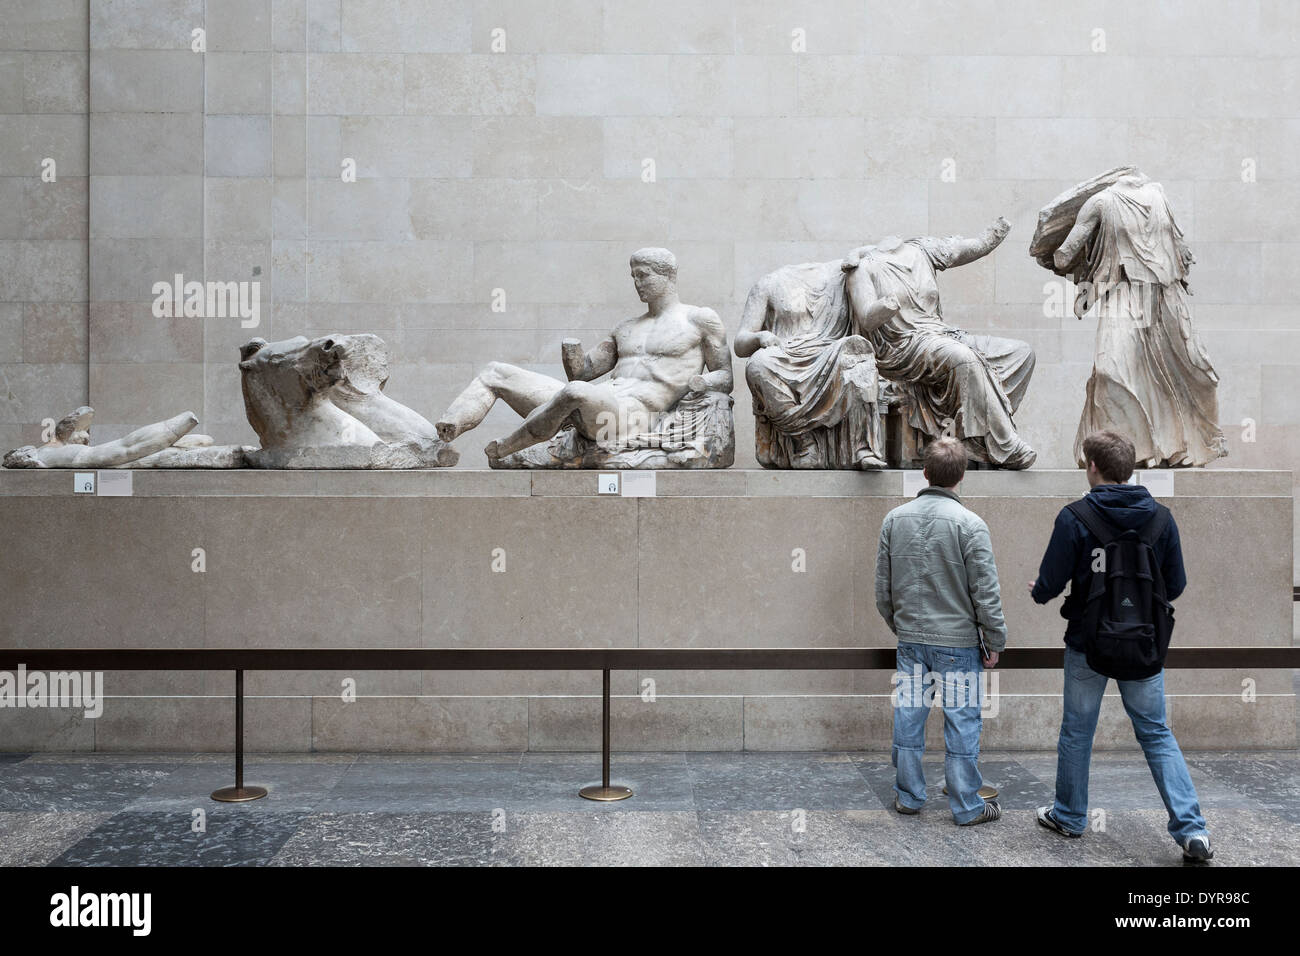 Tourists in front of the East Pediment of Parthenon in British Museum in London. - Stock Image